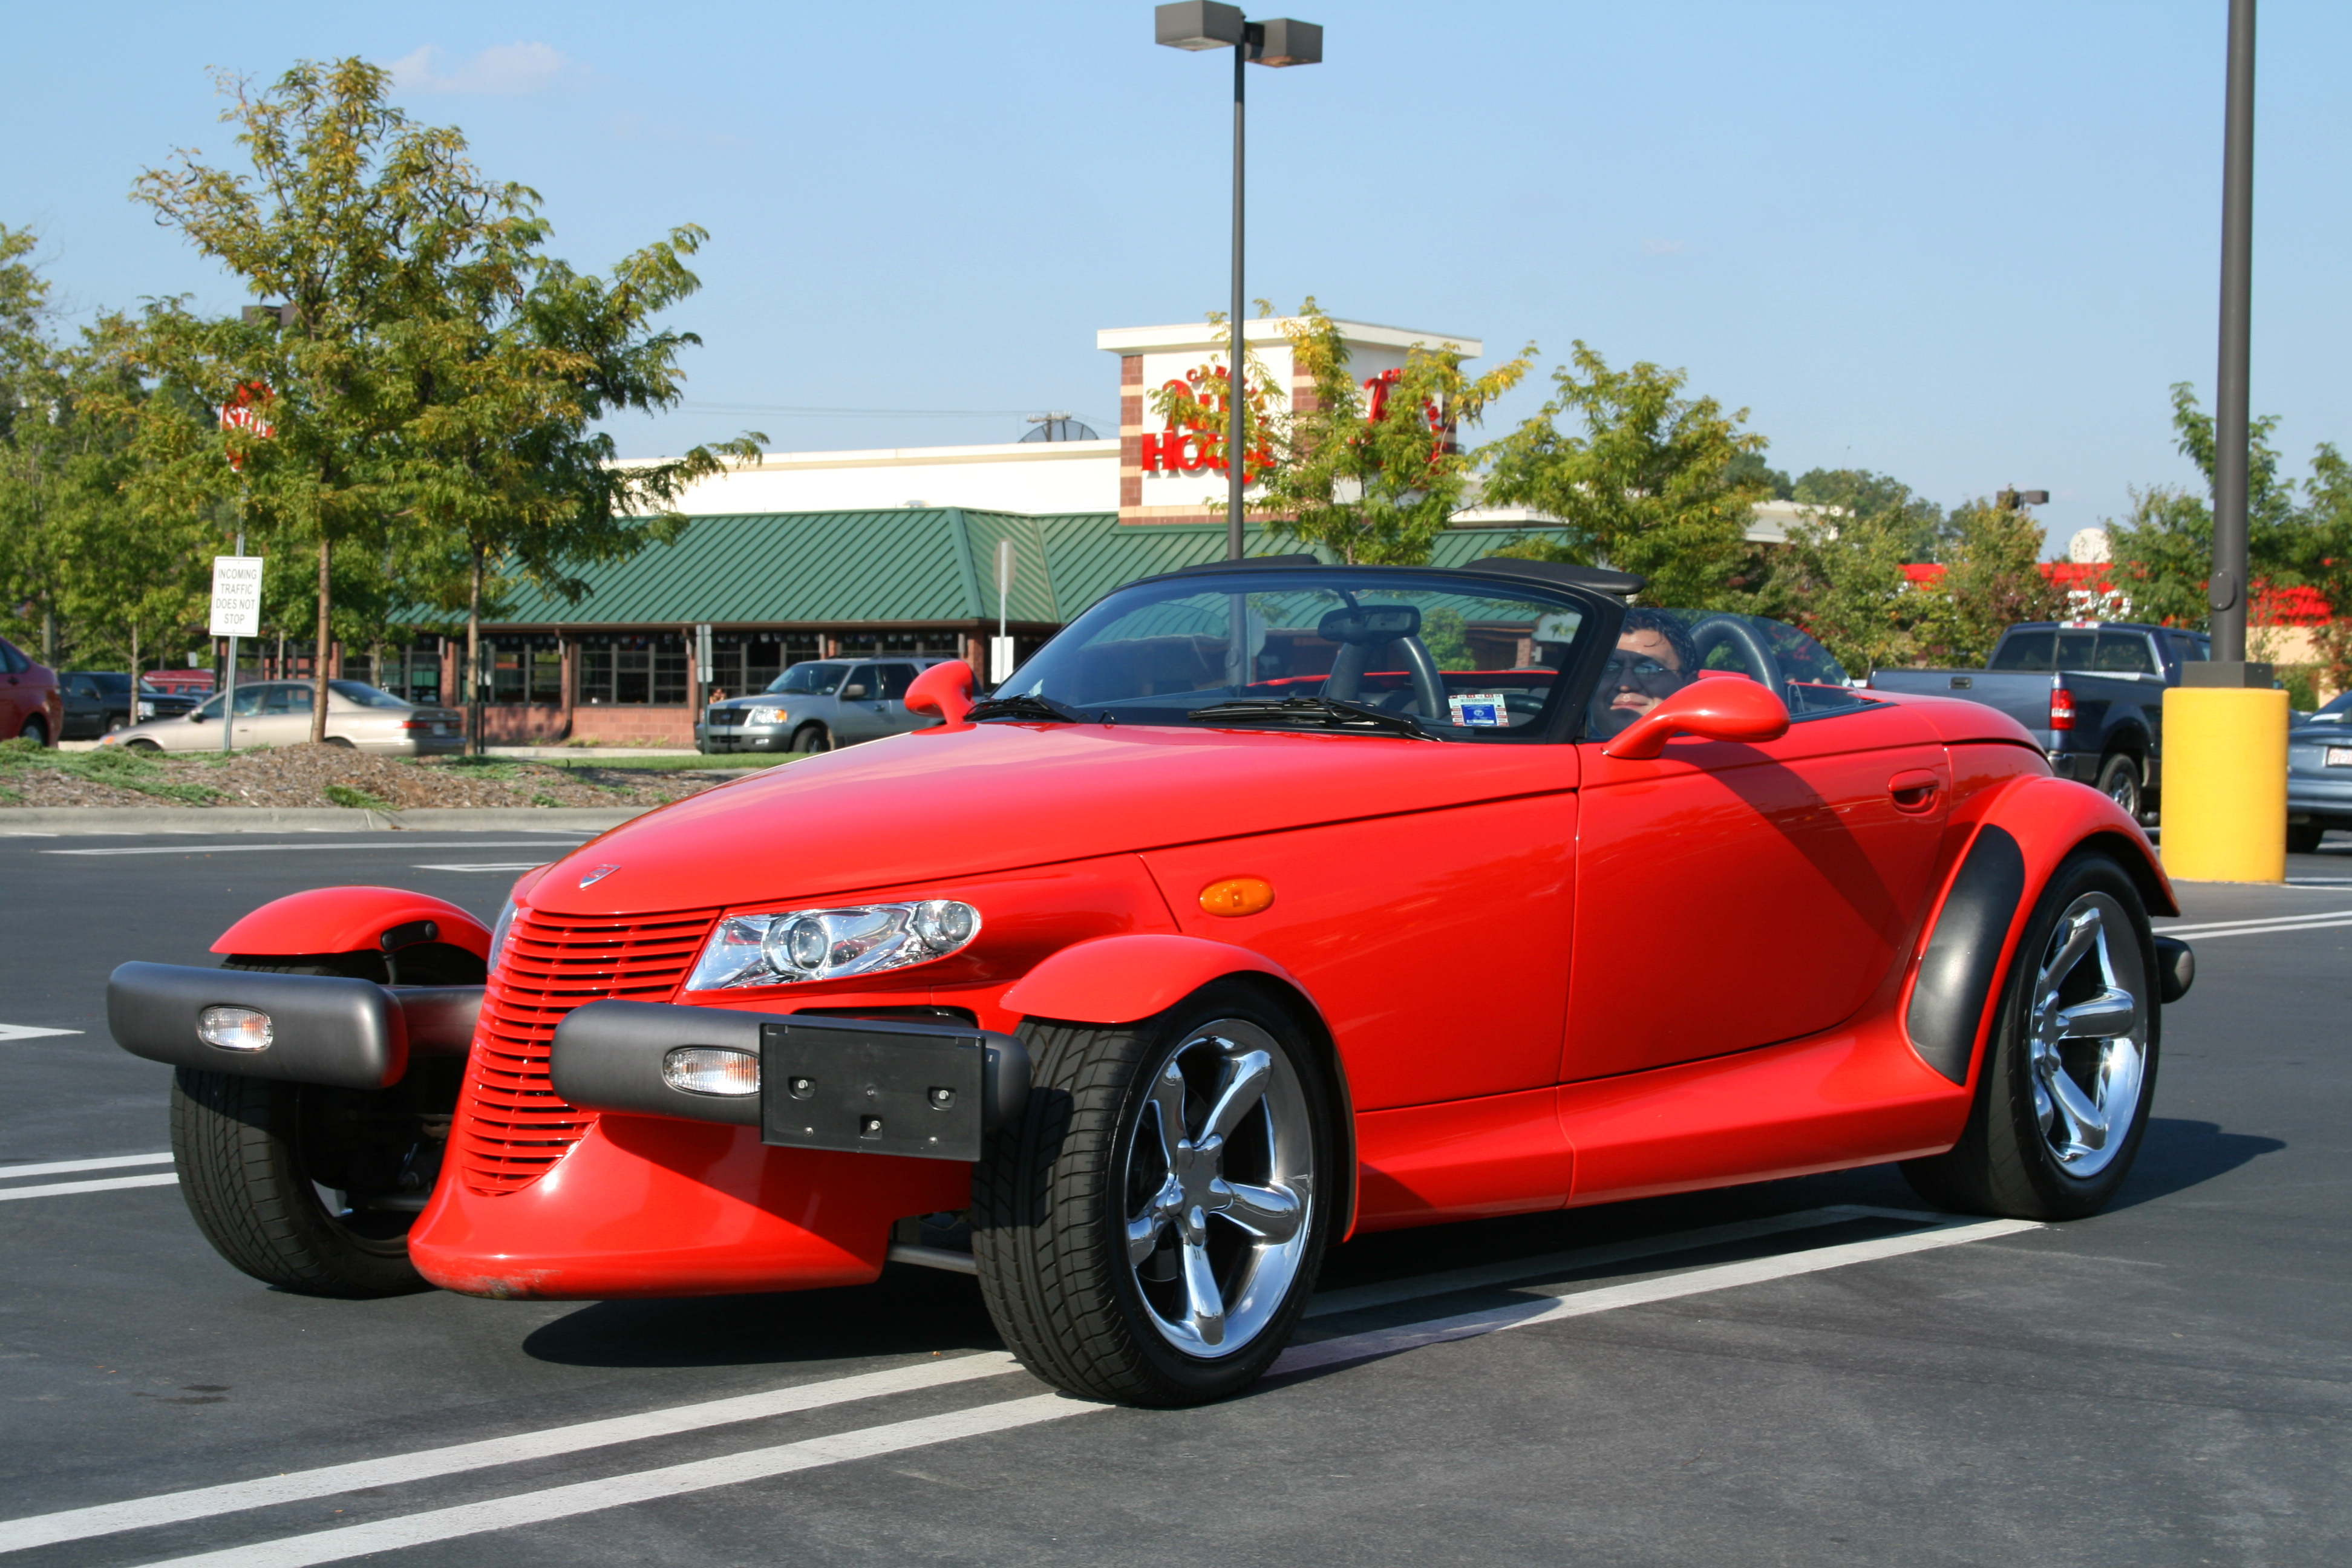 File 2008 10 05 Red Plymouth Prowler At South Square Jpg